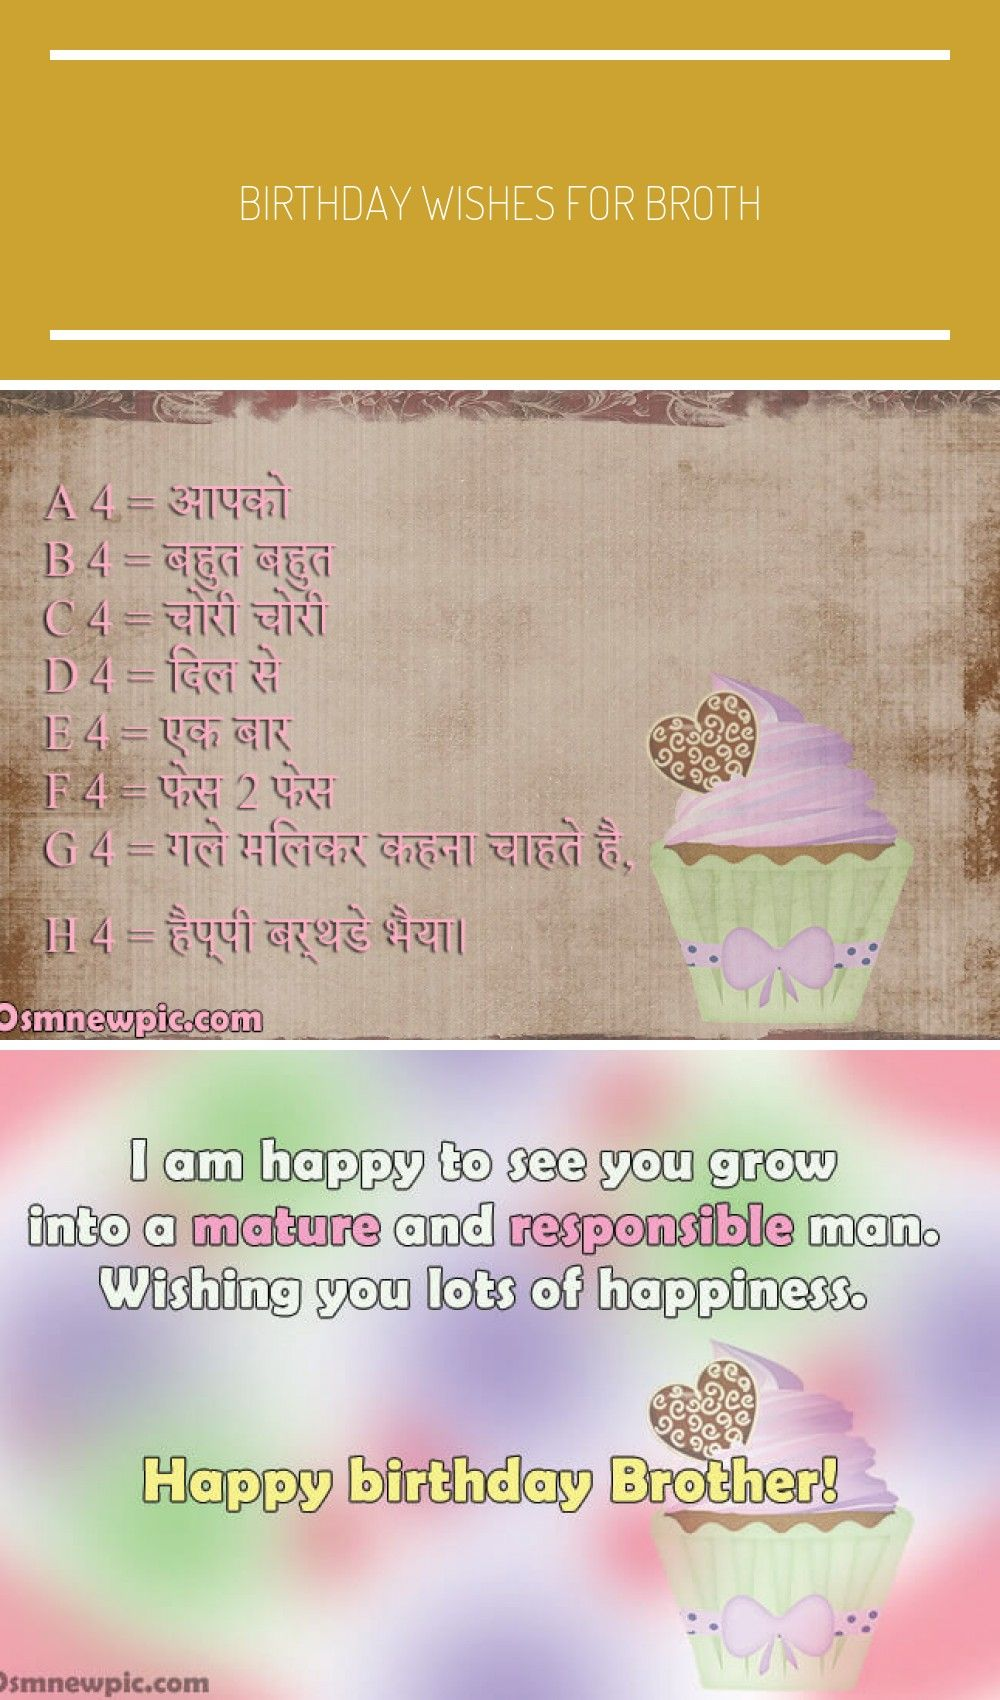 Birthday Wishes For Brother In Hindi Birthday Wishes For Brother